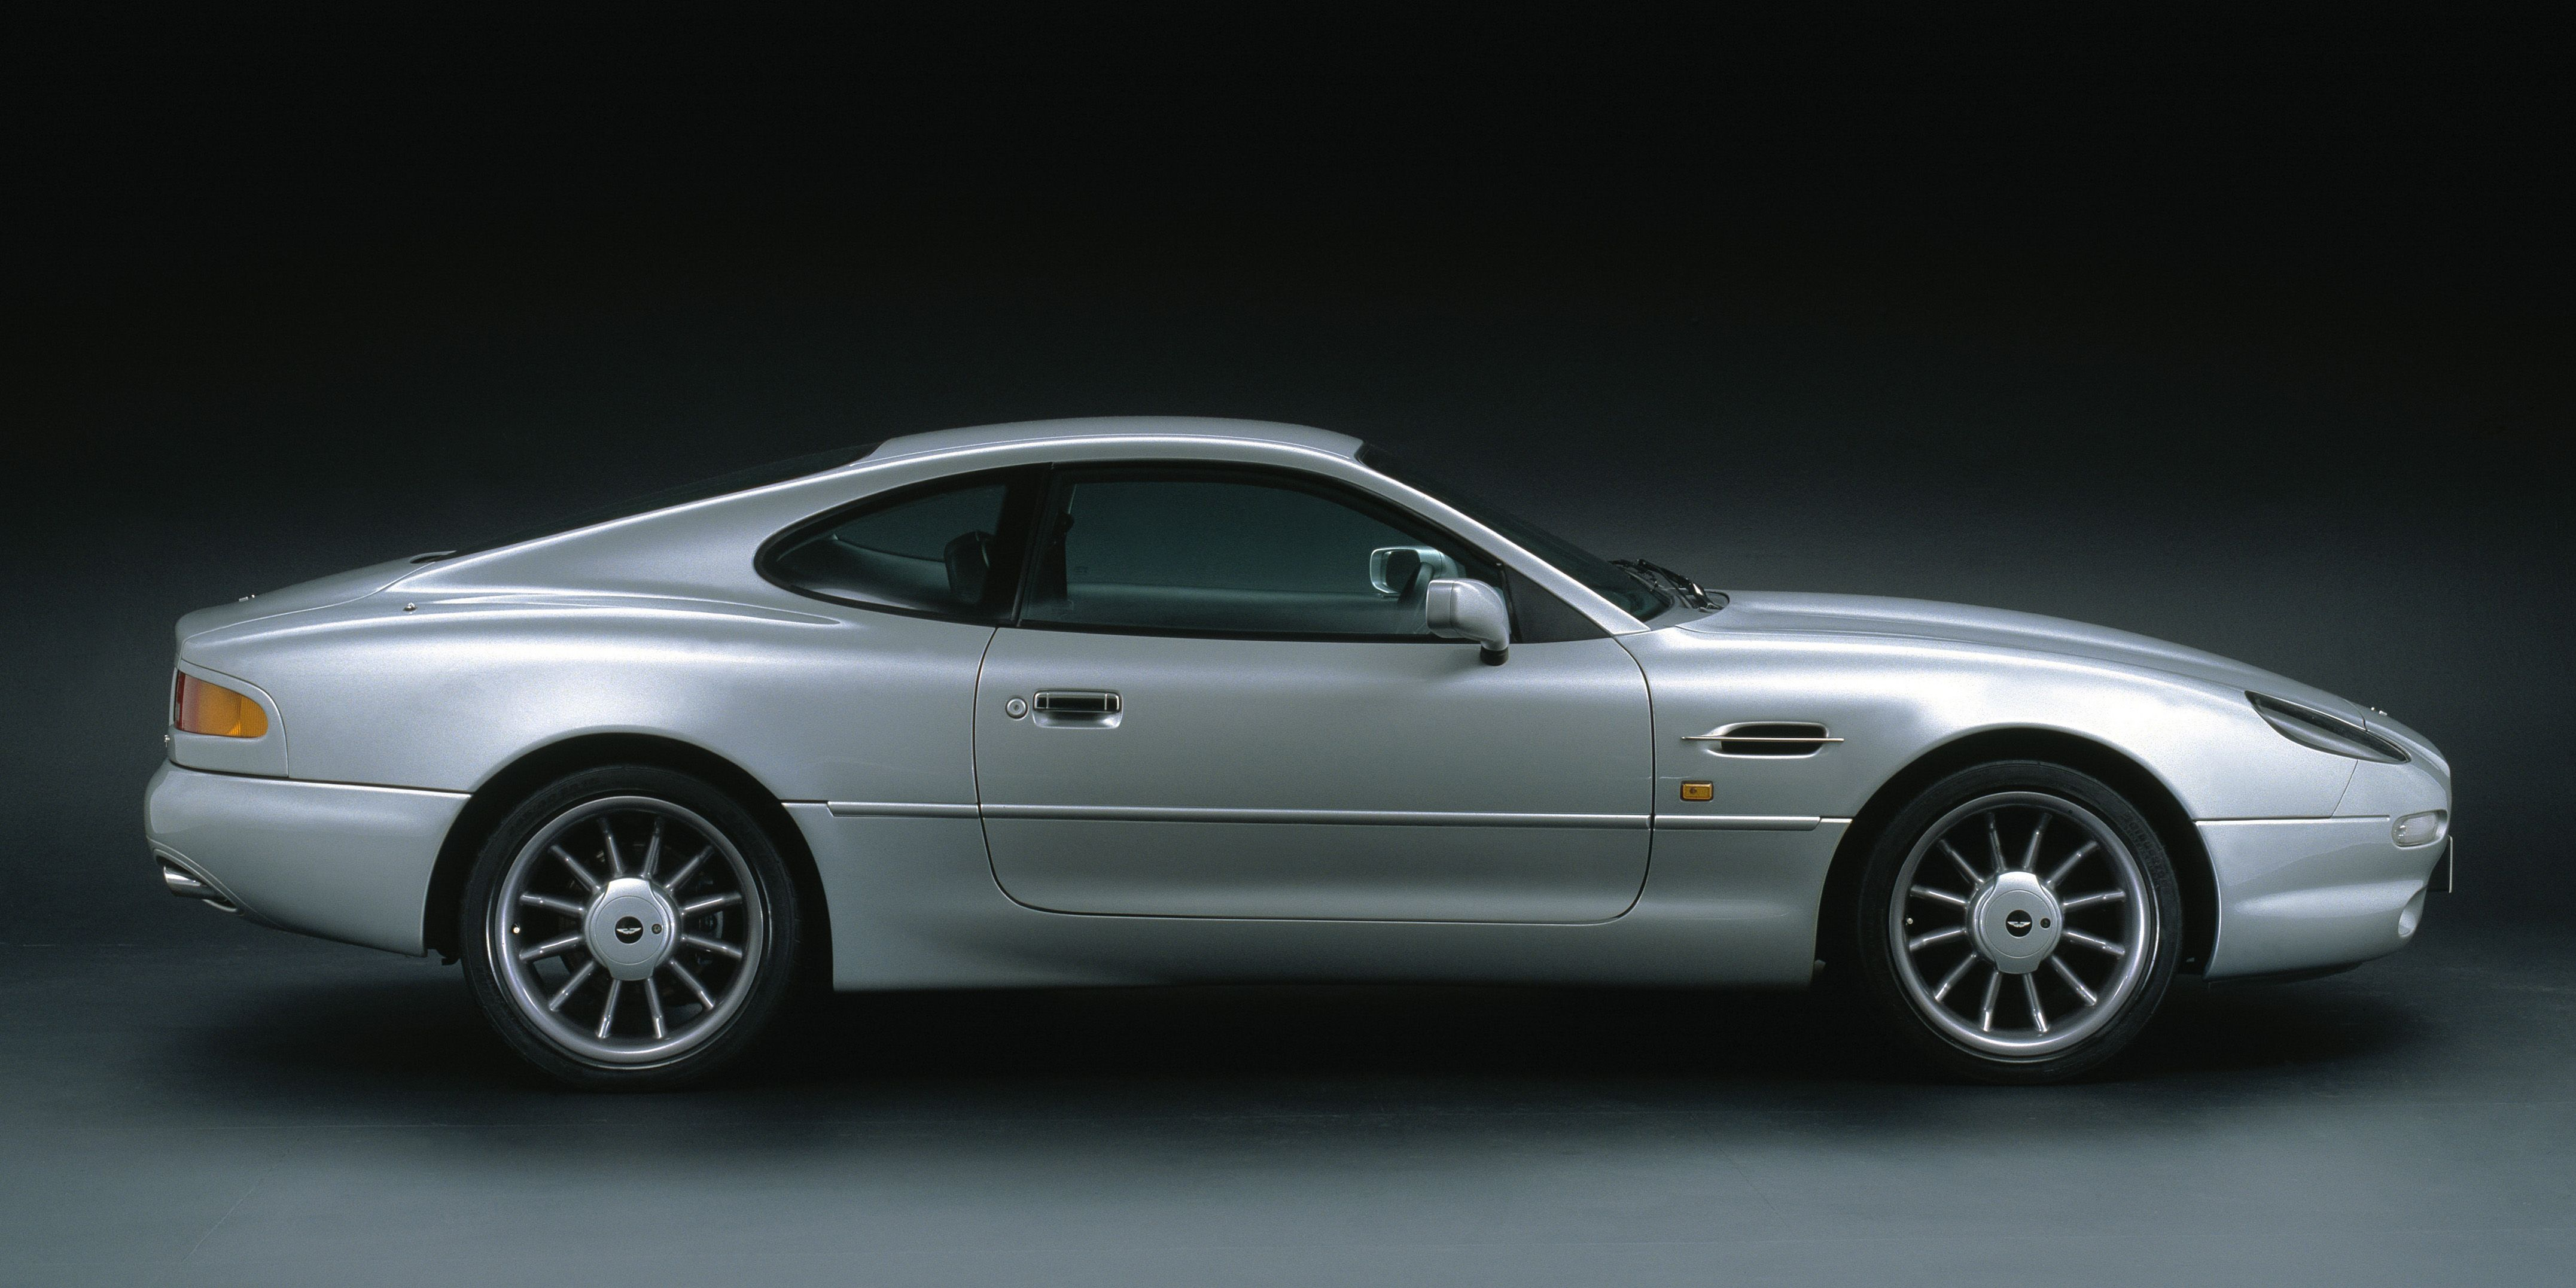 The Aston Martin Db7 And First Gen Mazda Miata Share One Important Part